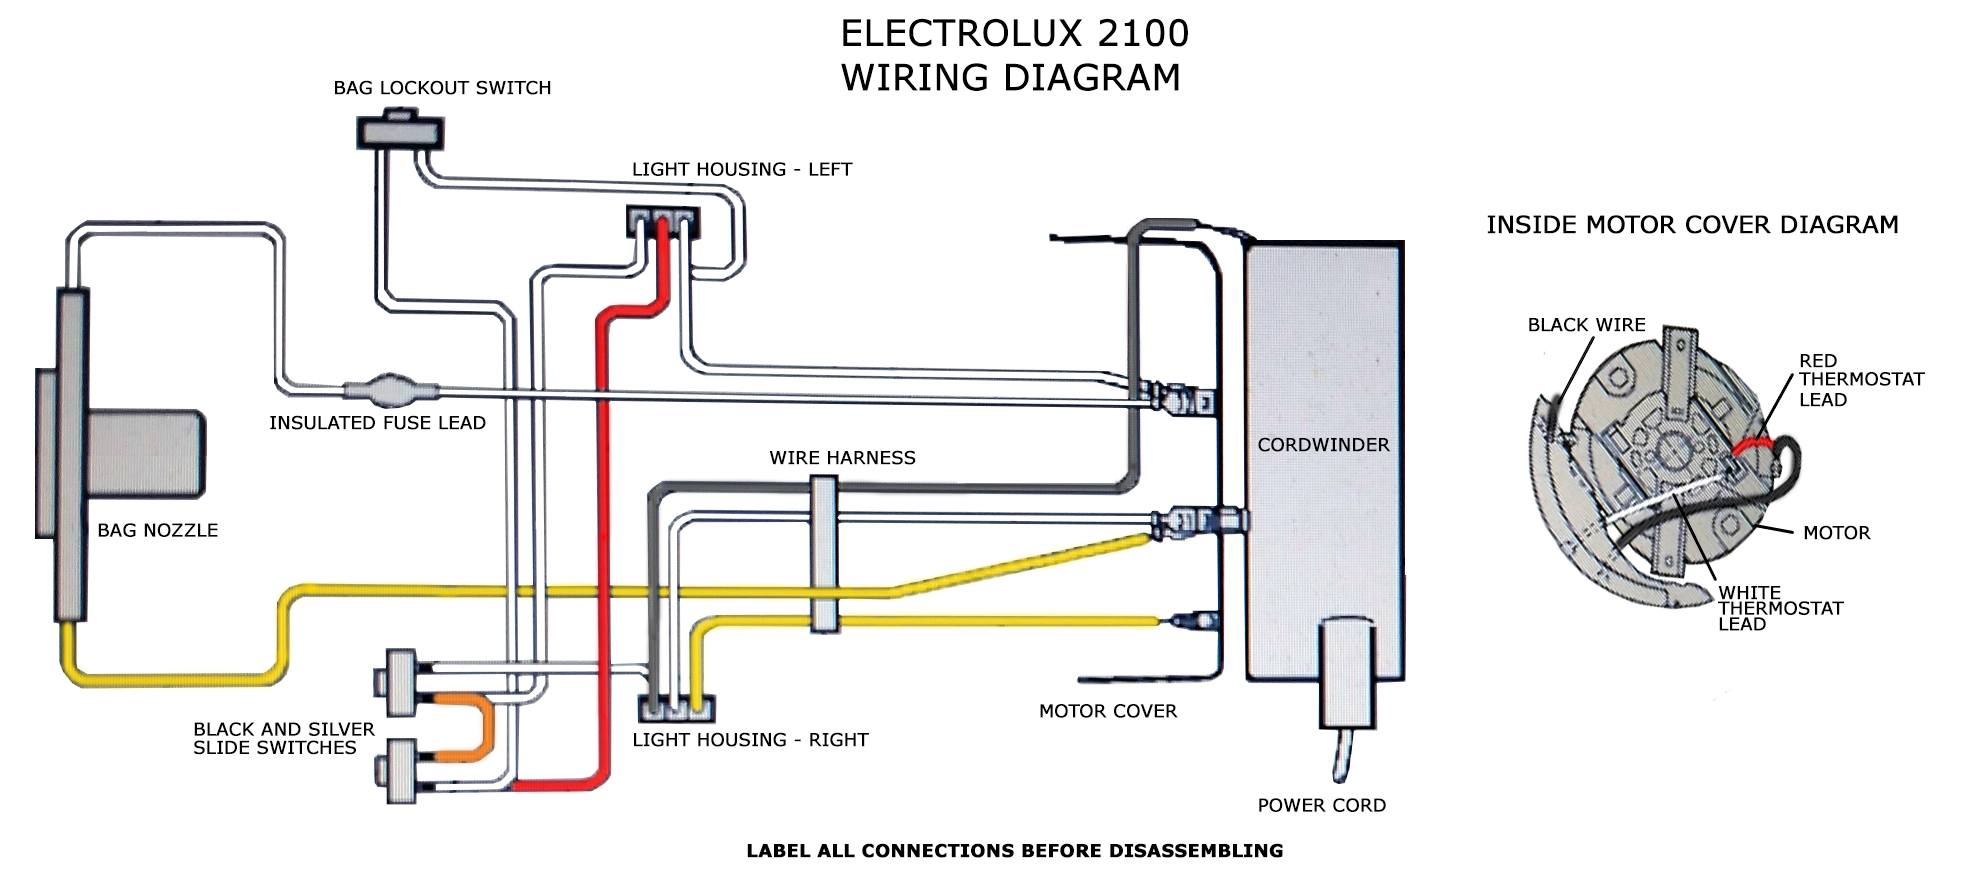 2100 wiring diagram electrolux 2100 wiring diagram vacuum cleaner motor wiring diagram at panicattacktreatment.co